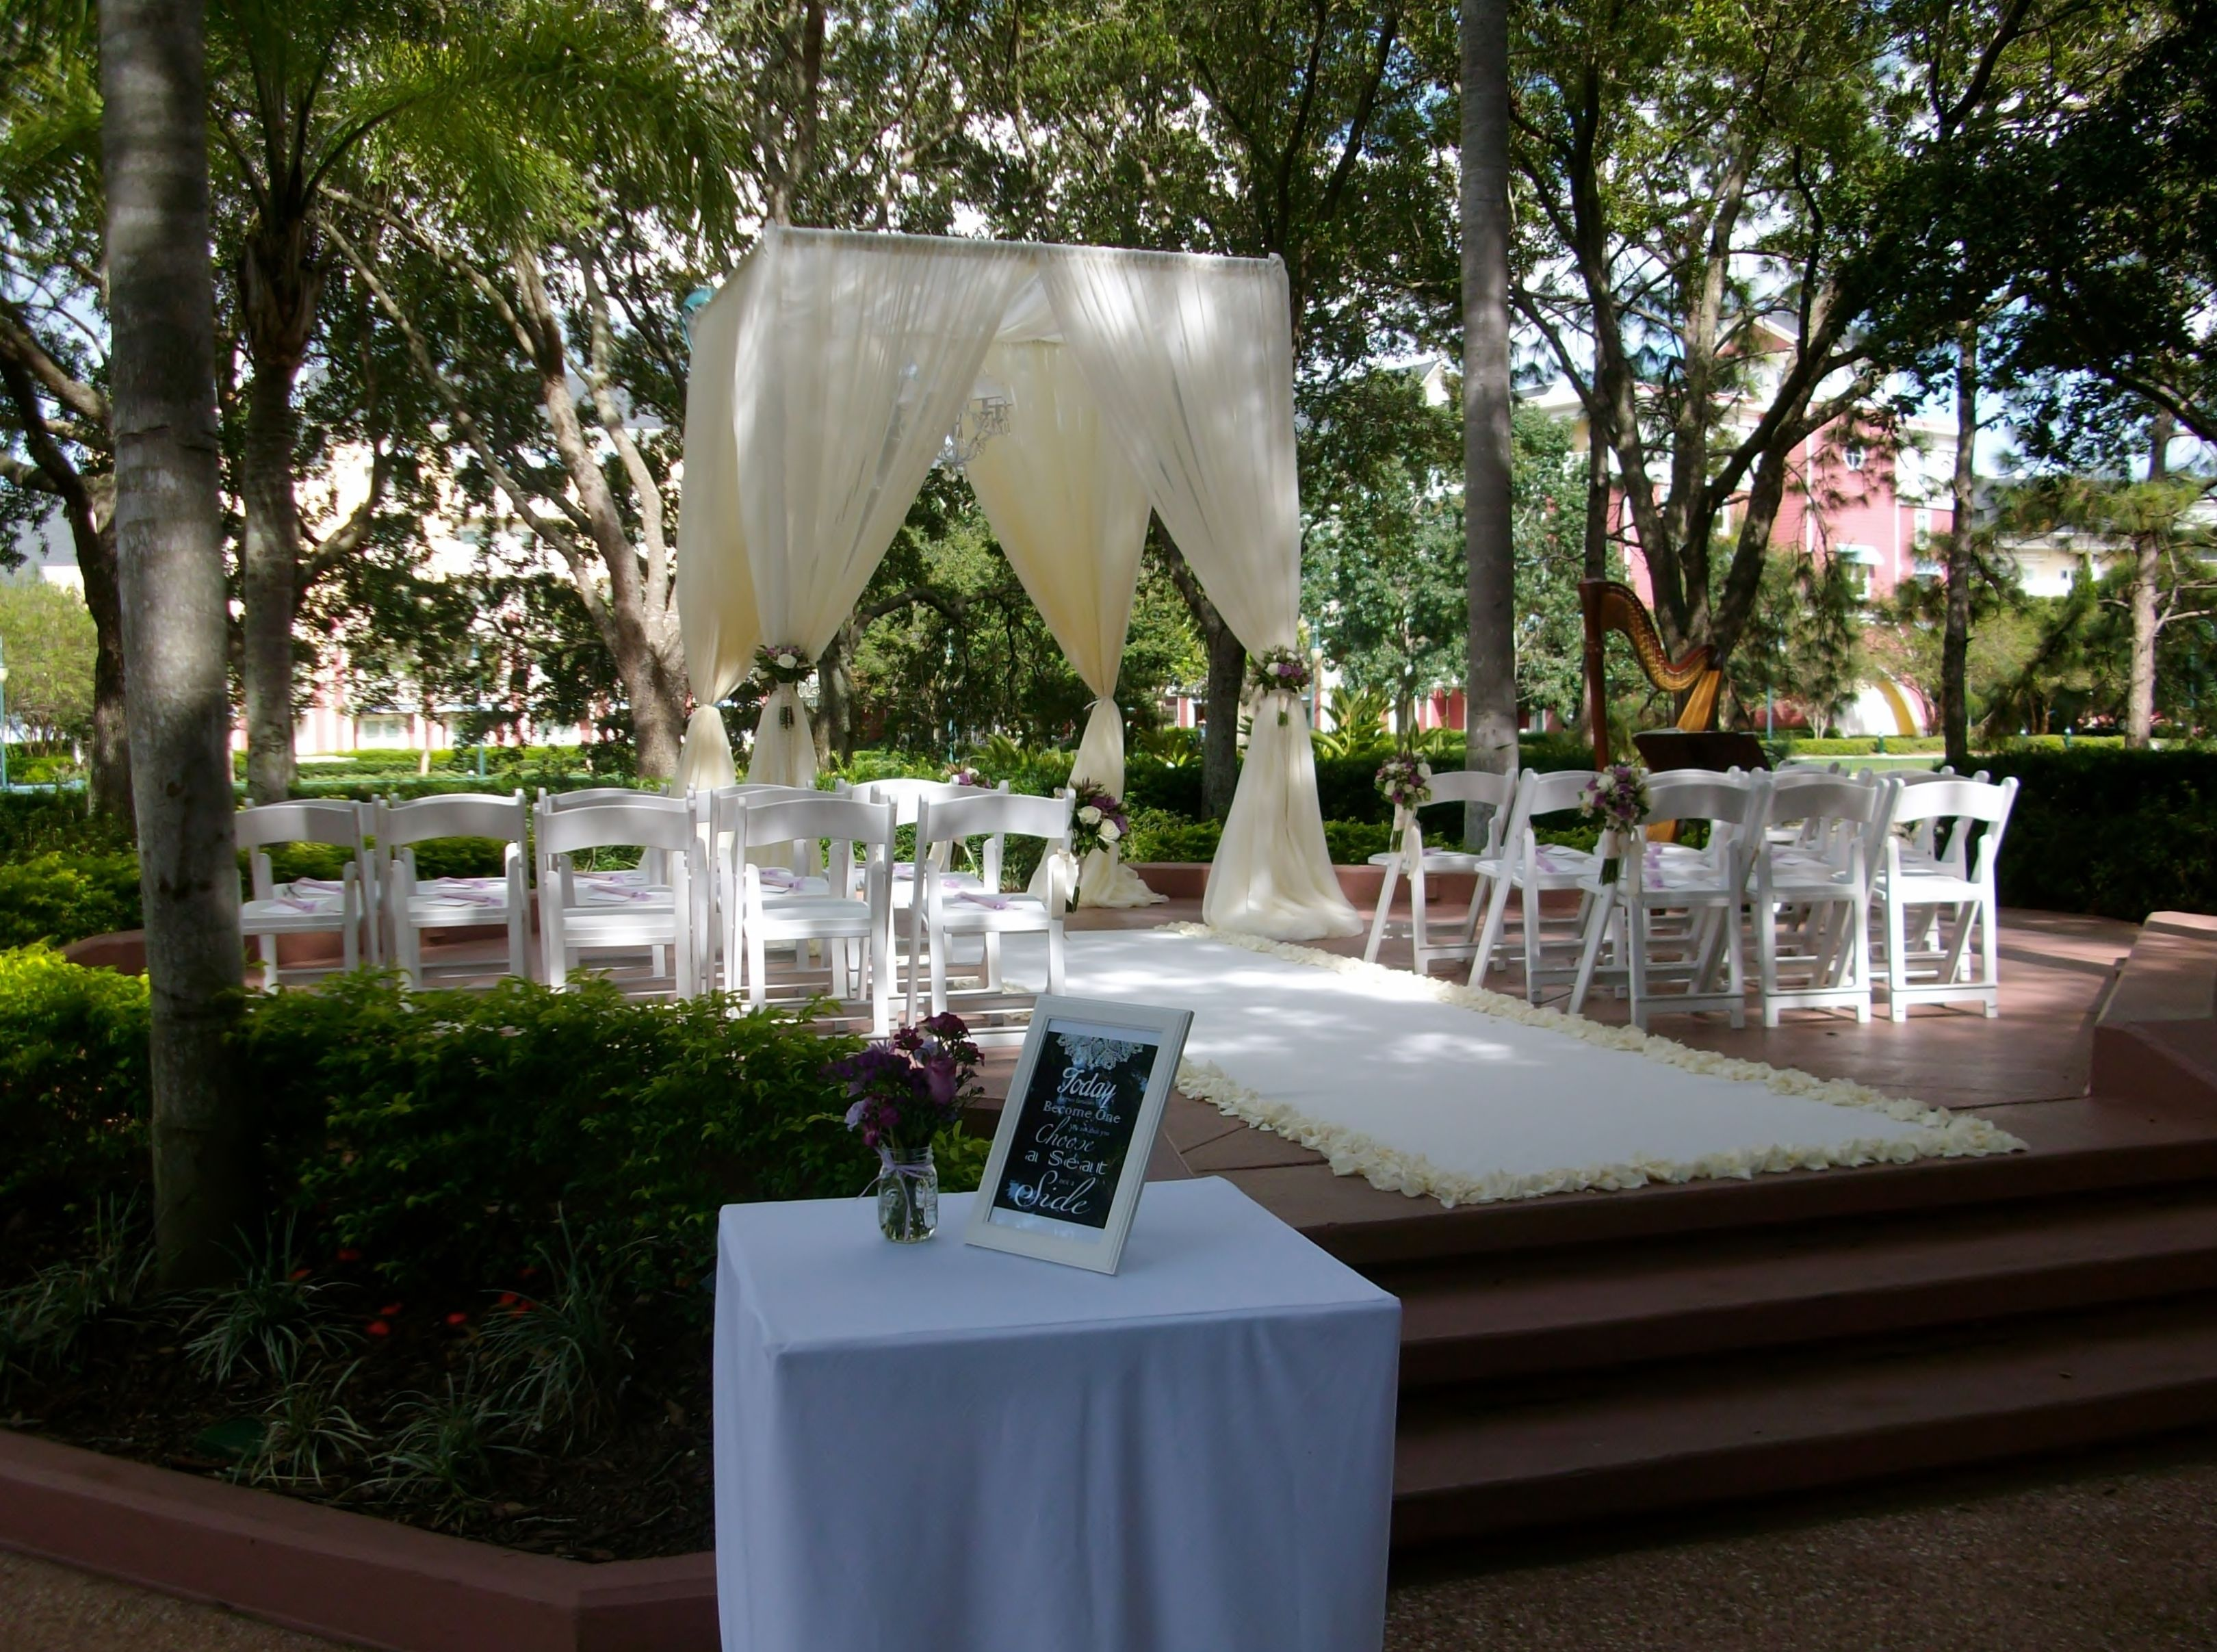 Disney World Swan Hotel Wedding Ceremony At The Crescent Terrace Location A Beautiful Venue